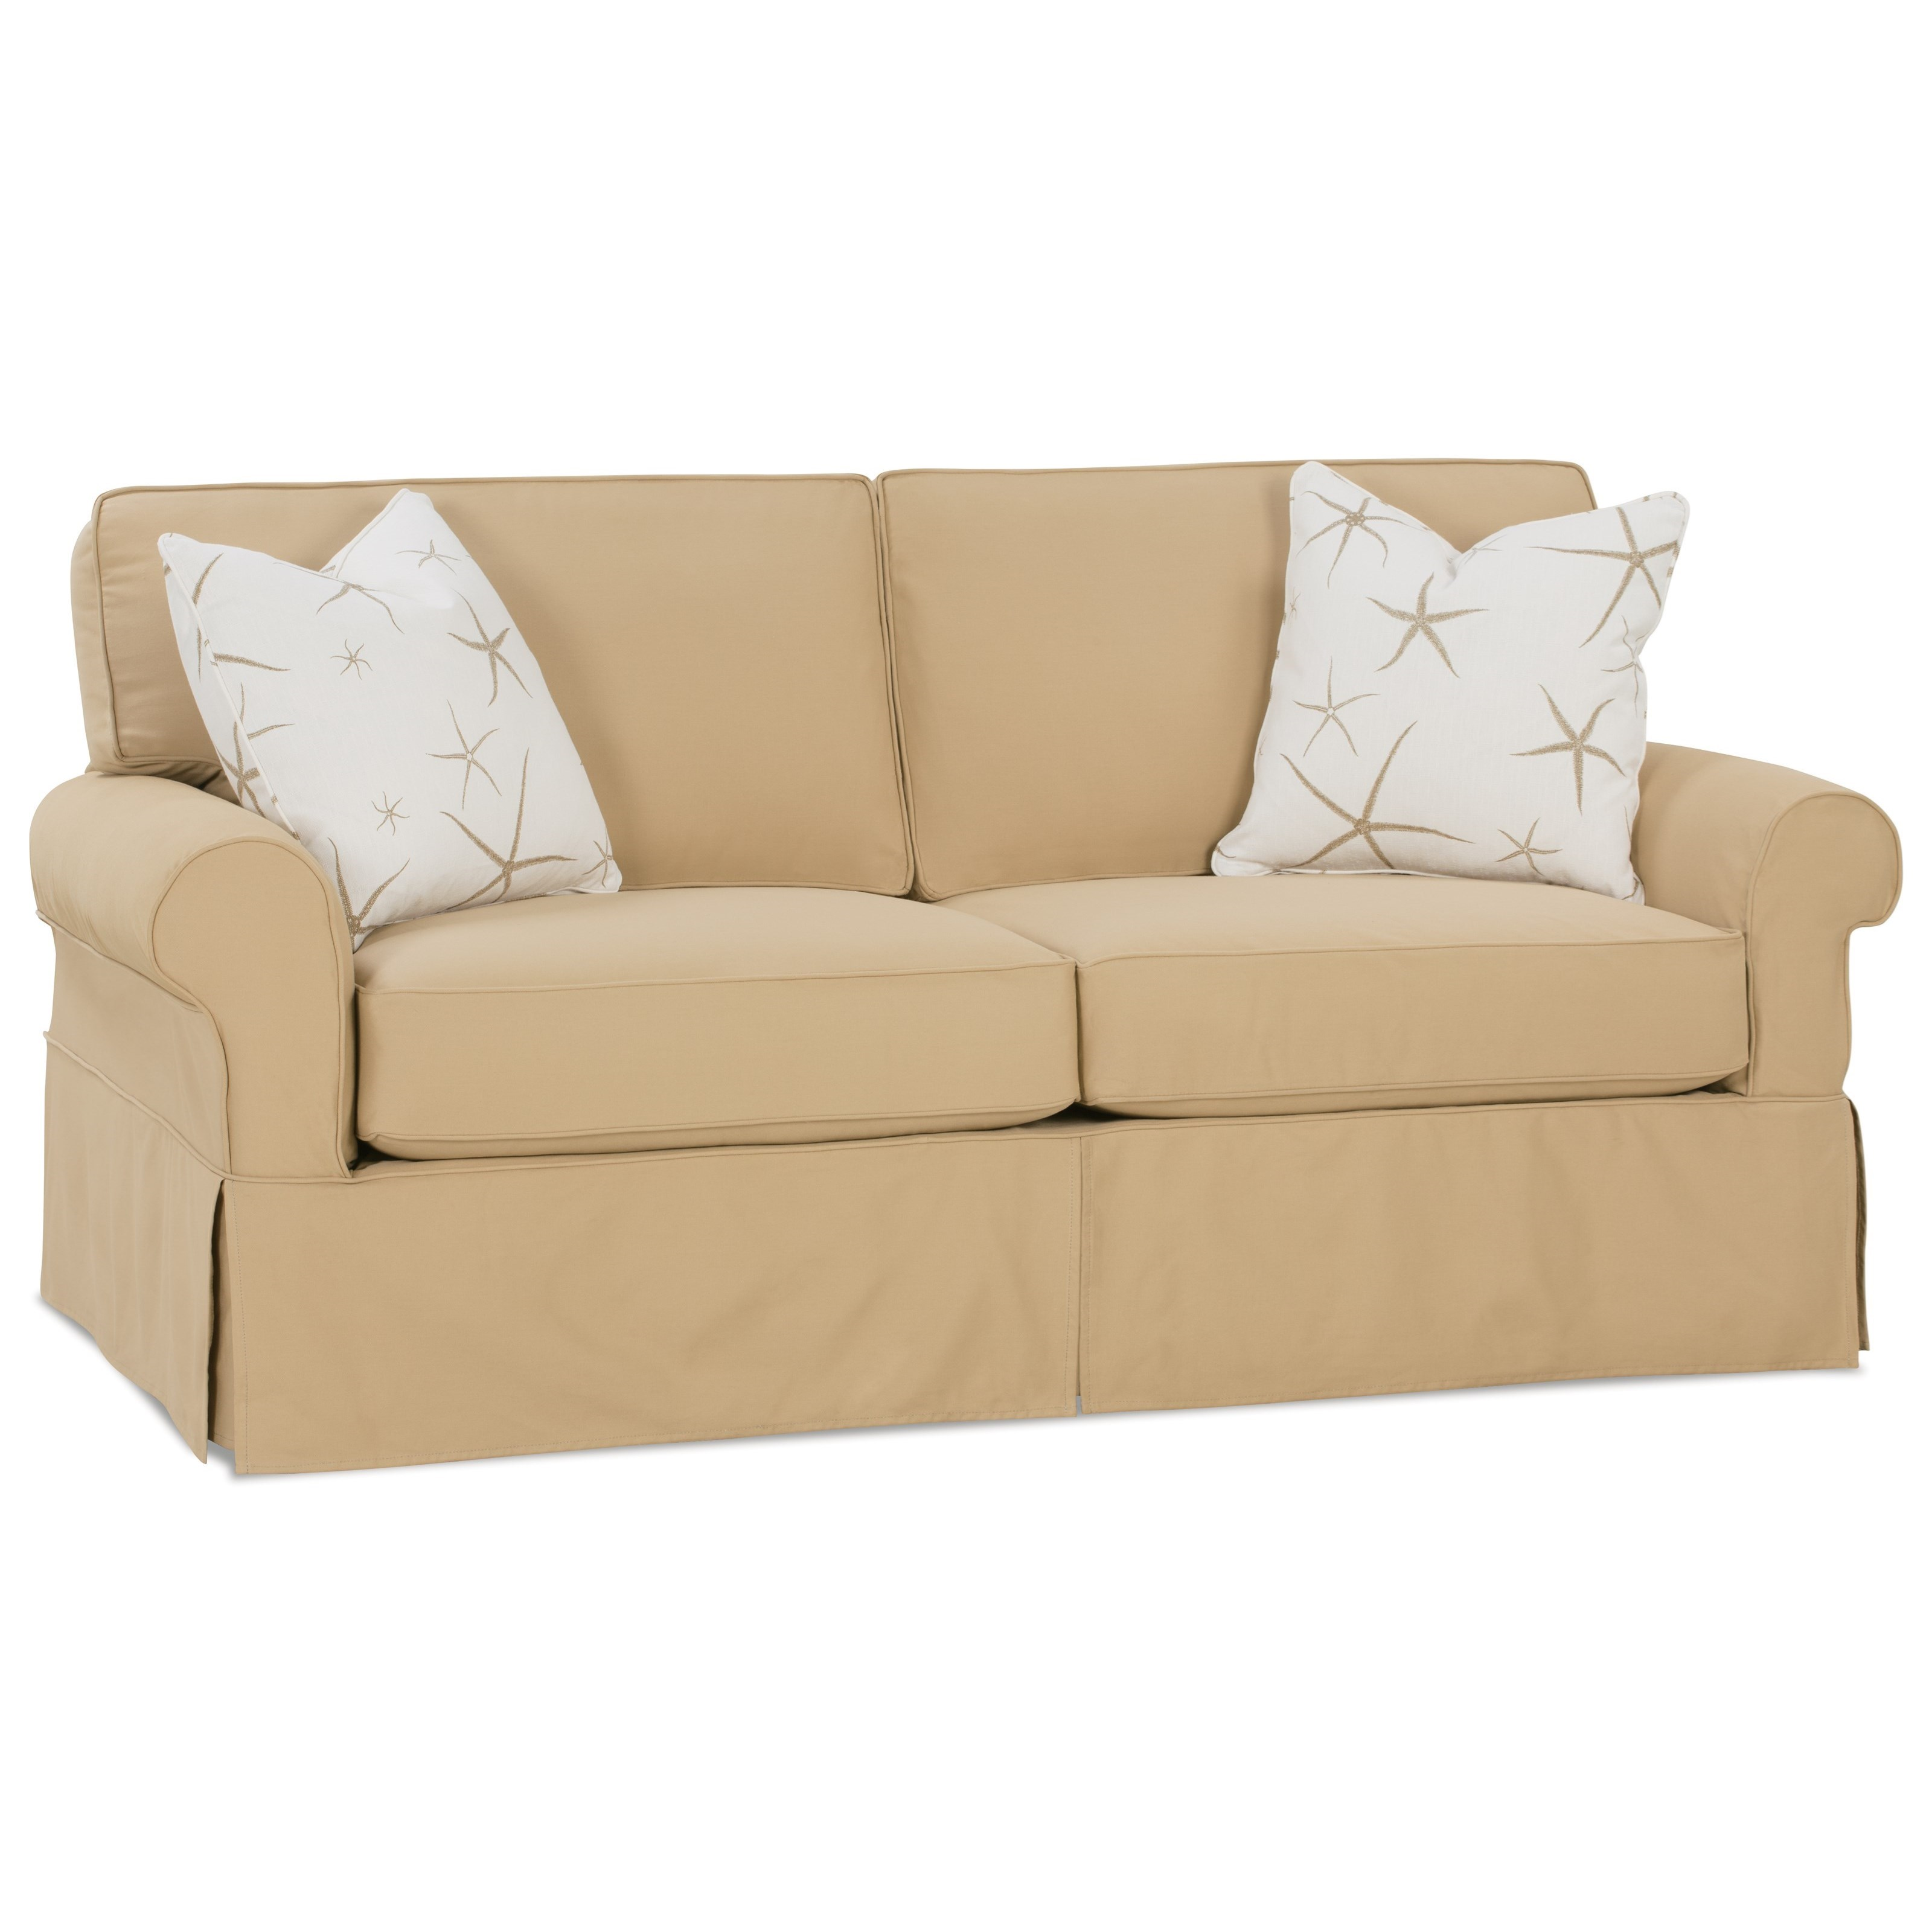 Nantucket  Transitional Sofa by Rowe at Baer's Furniture